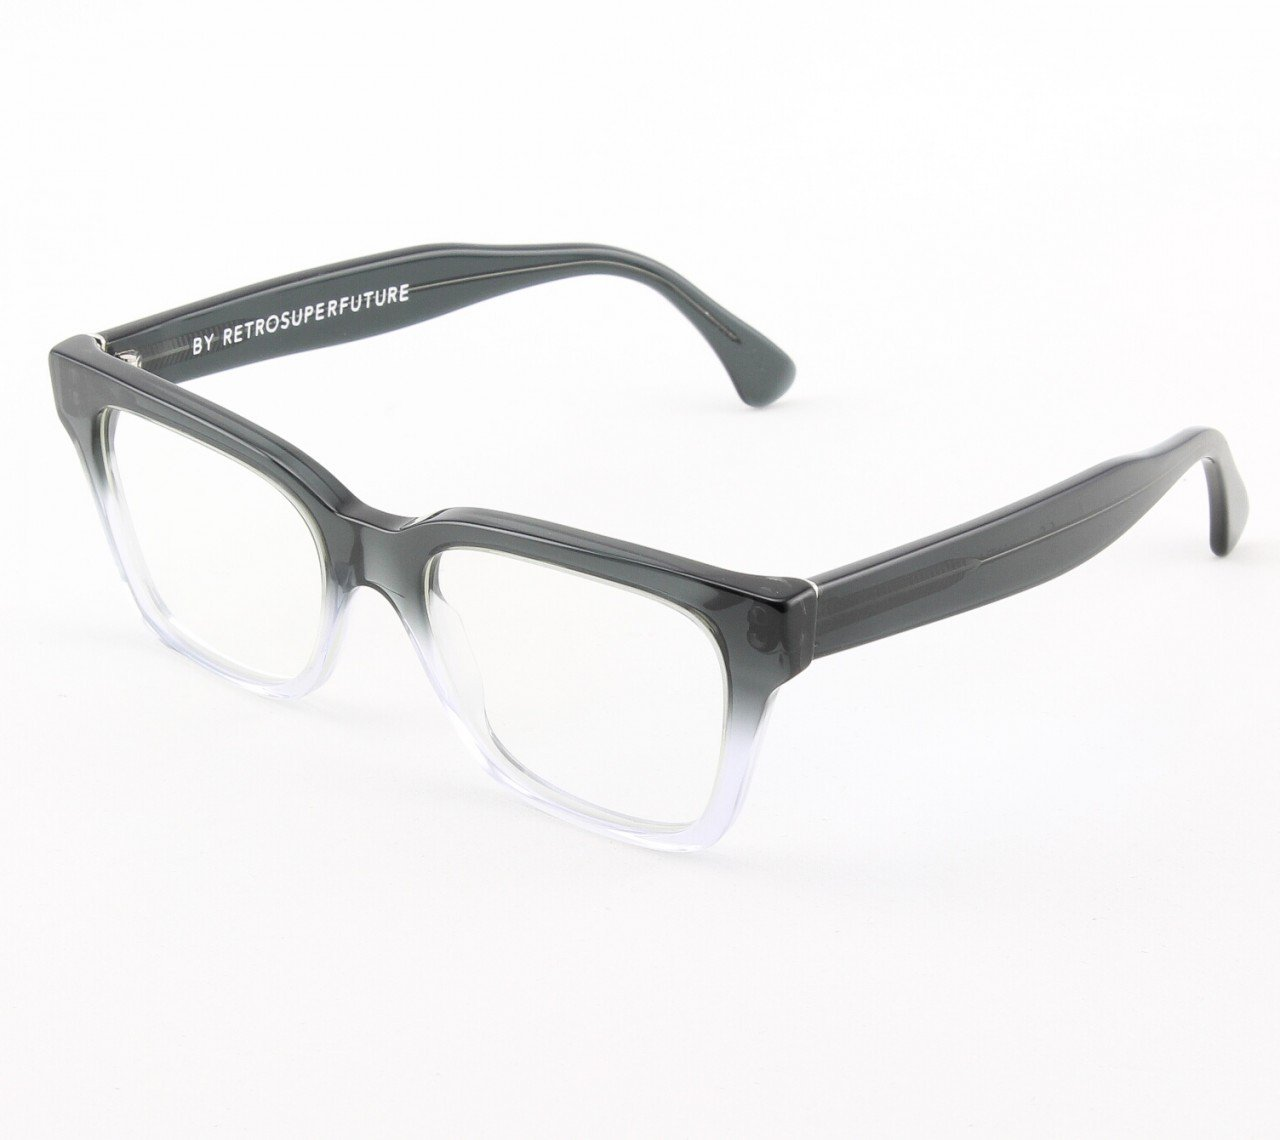 Super America 823 Eyeglasses Crystal & Smoke with Clear Zeiss Lenses by RETROSUPERFUTURE